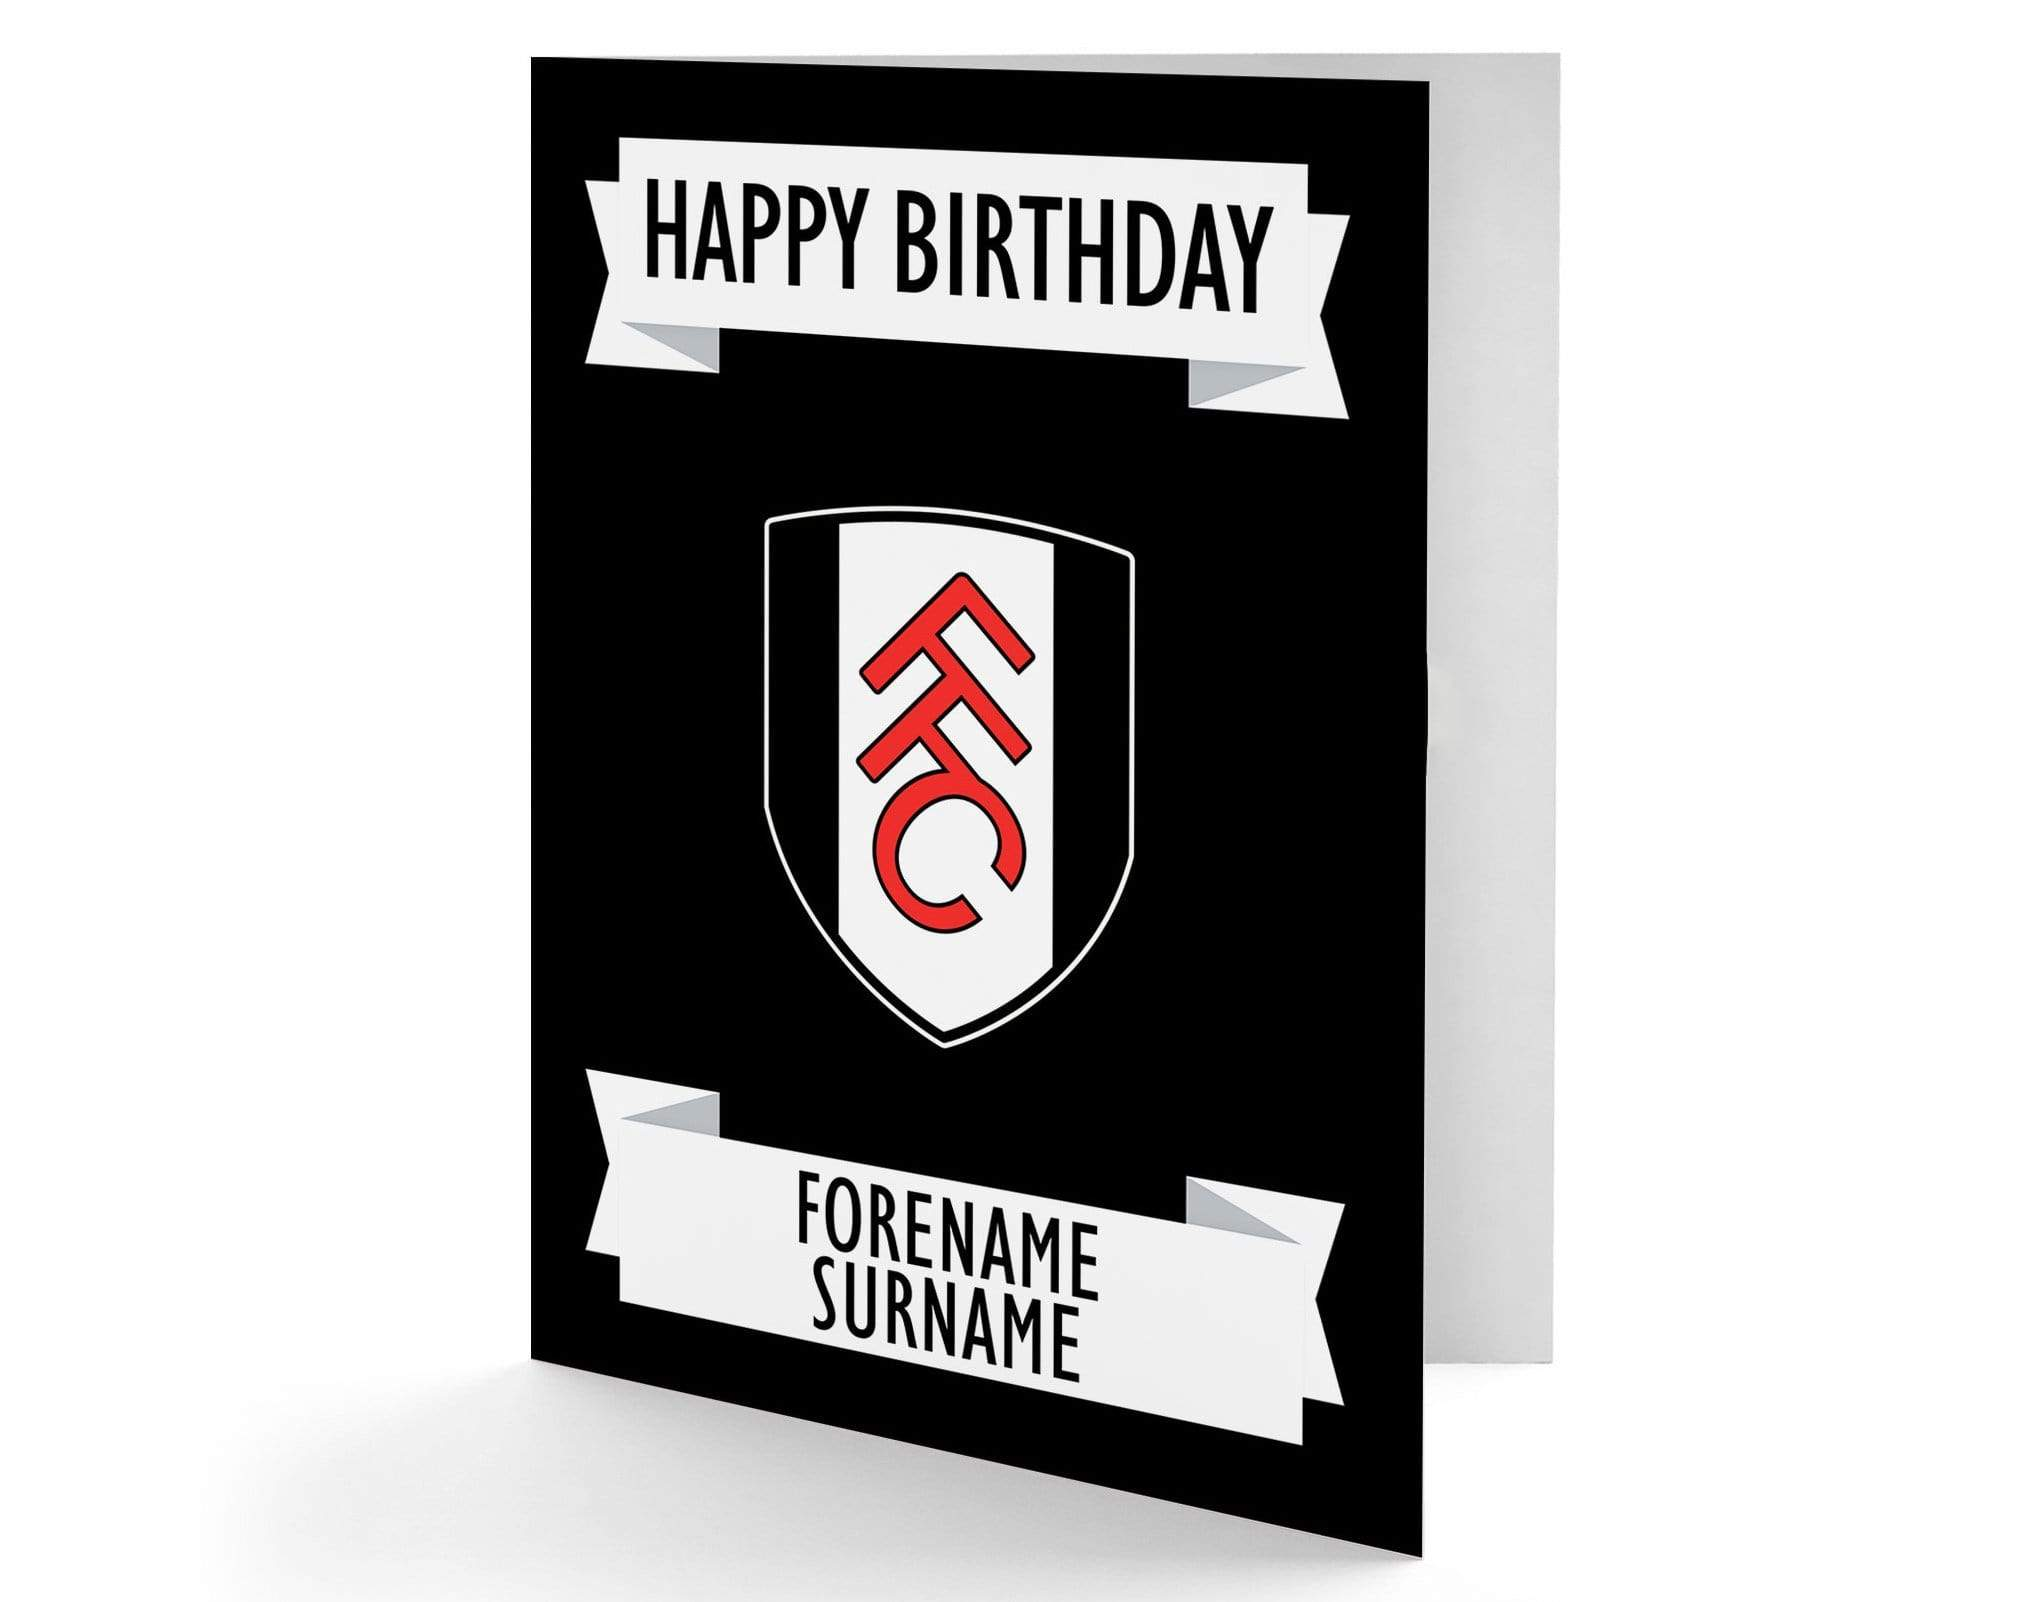 Personalised Fulham Birthday Card, Greeting & Note Cards by Glamorous Gifts